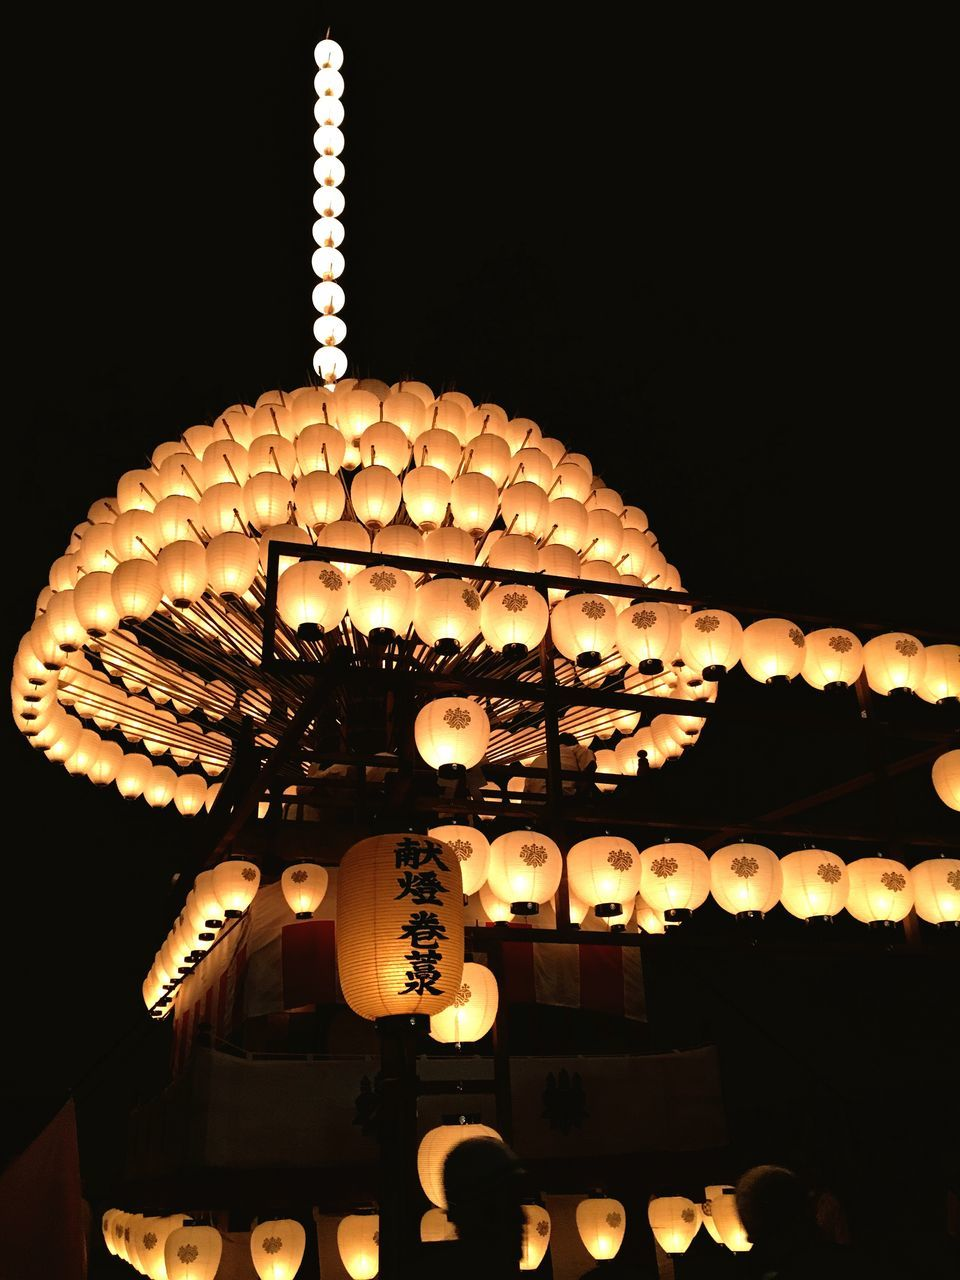 illuminated, lighting equipment, night, low angle view, hanging, cultures, no people, lantern, indoors